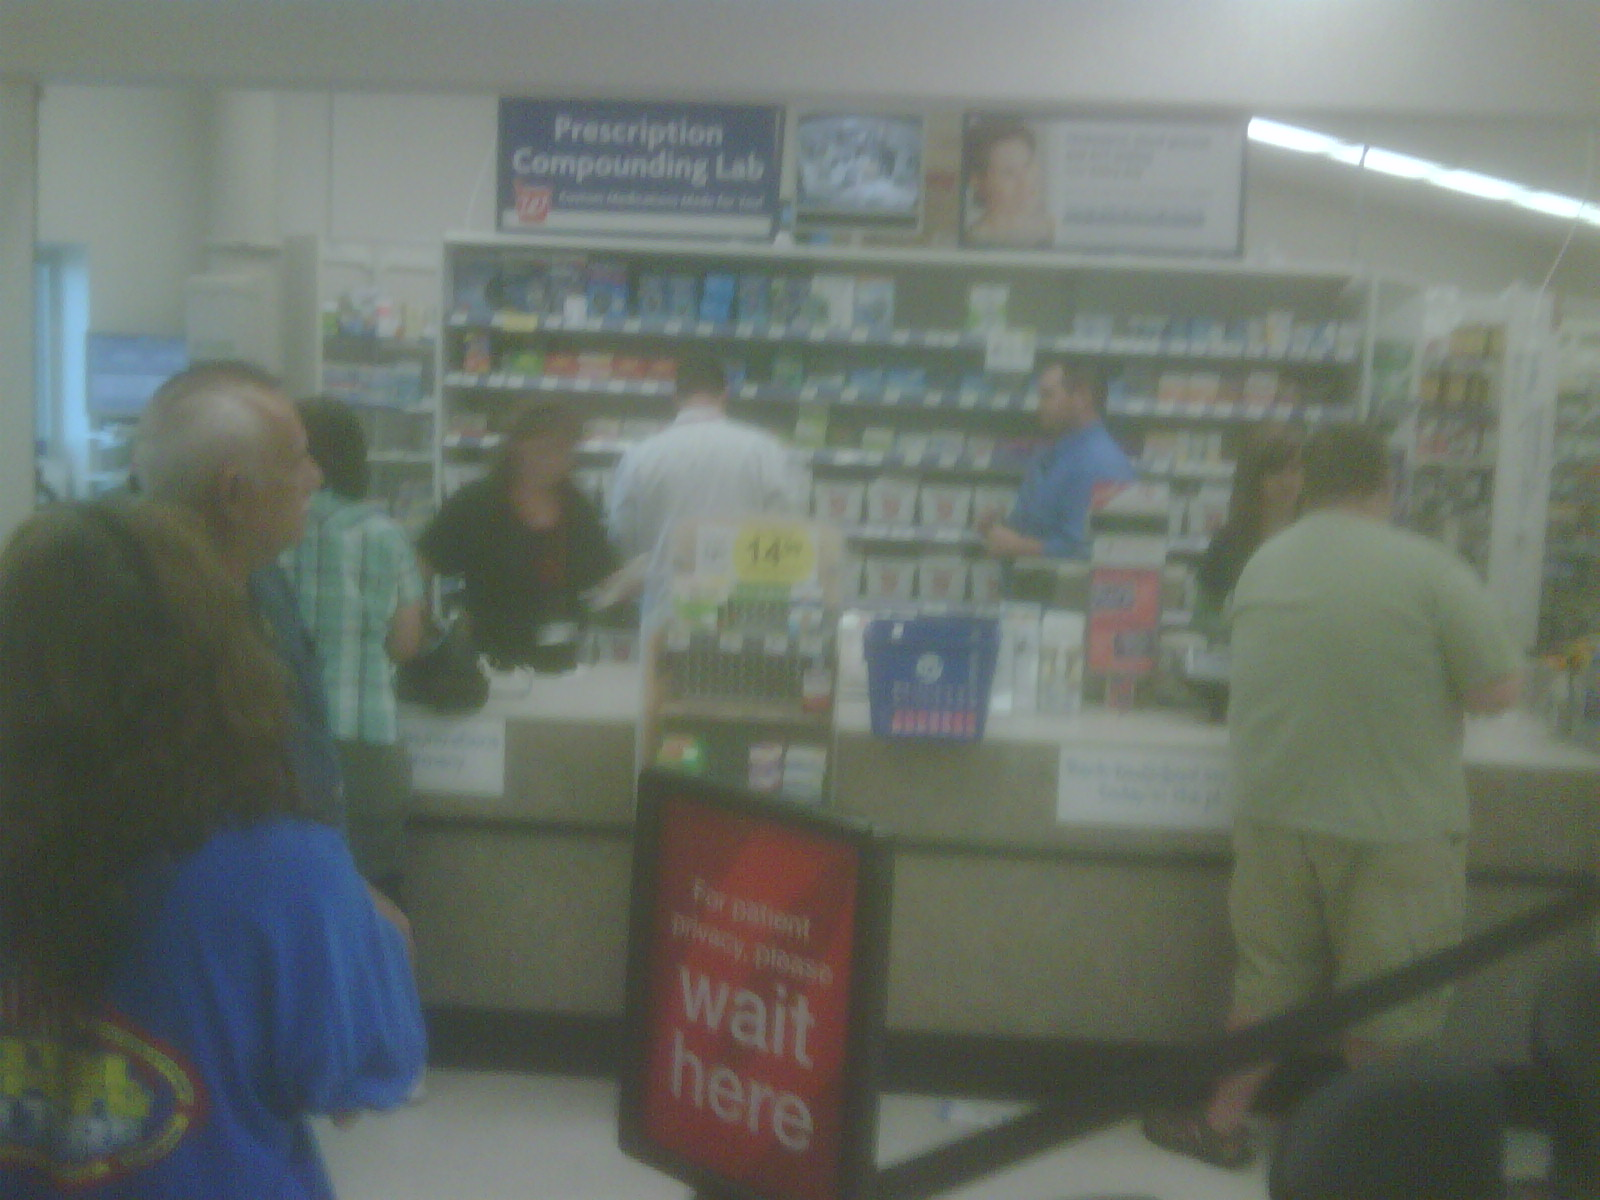 walgreens in utah pharmacy customer care